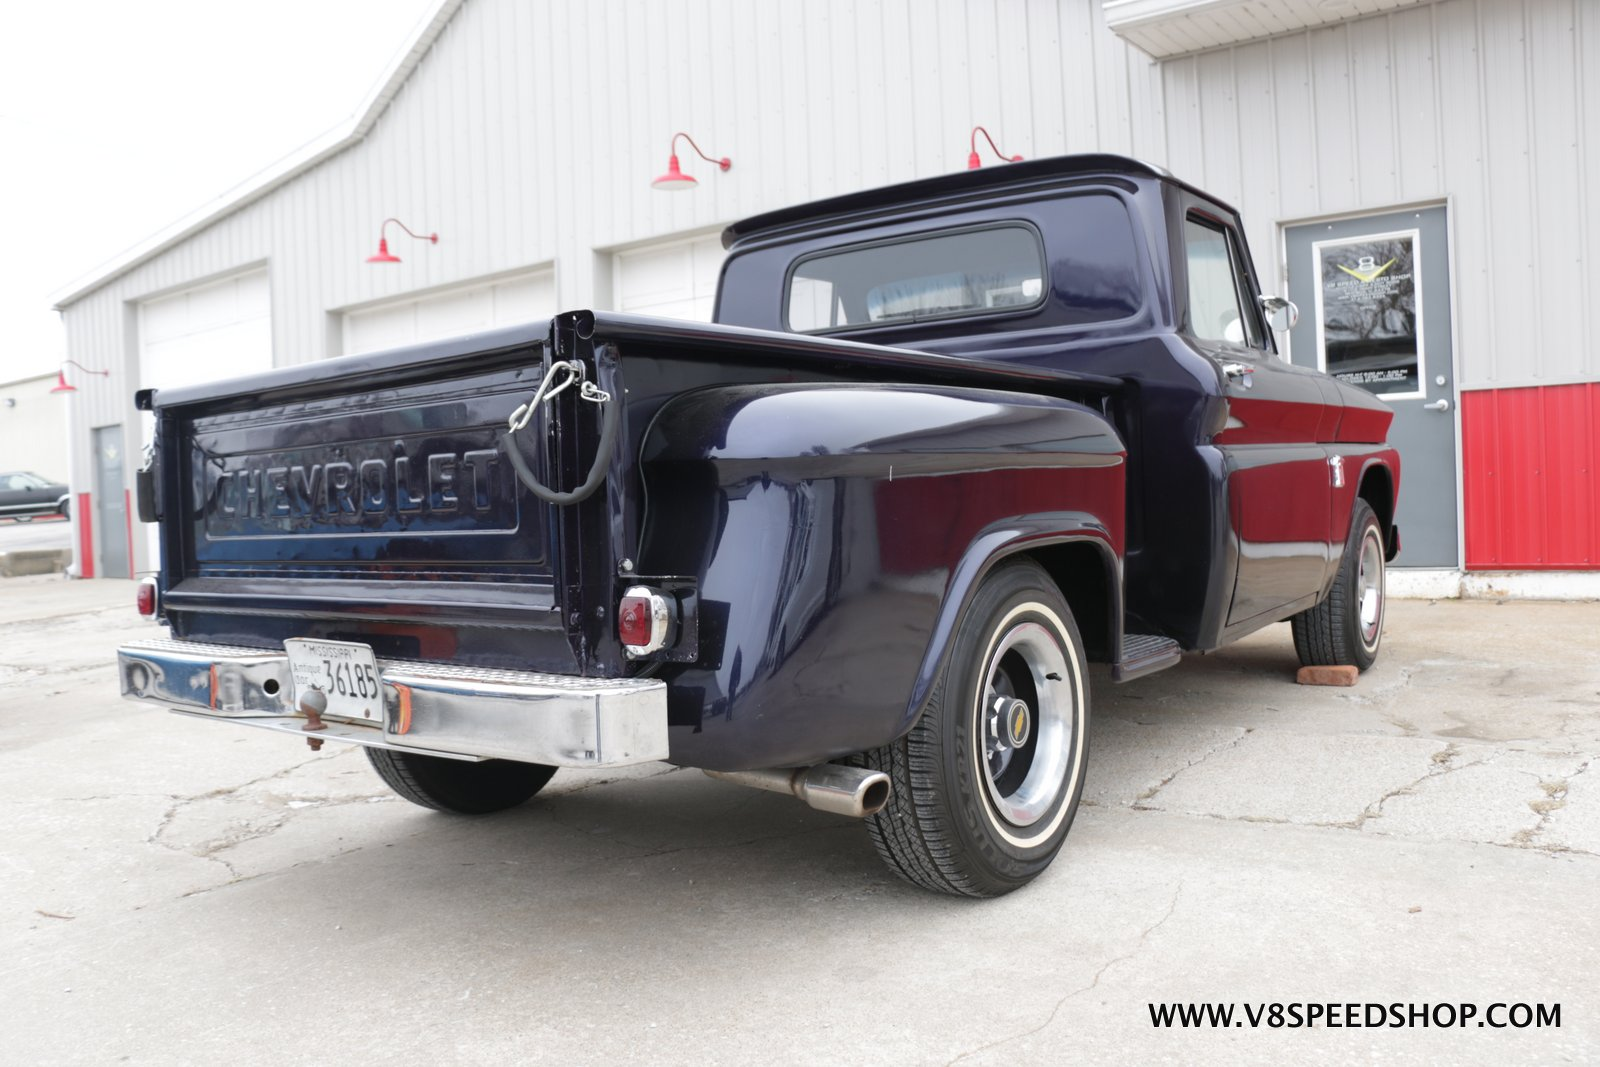 1964 Chevrolet C10 Power Steering and Maintenance Upgrades at the V8 Speed and Resto Shop